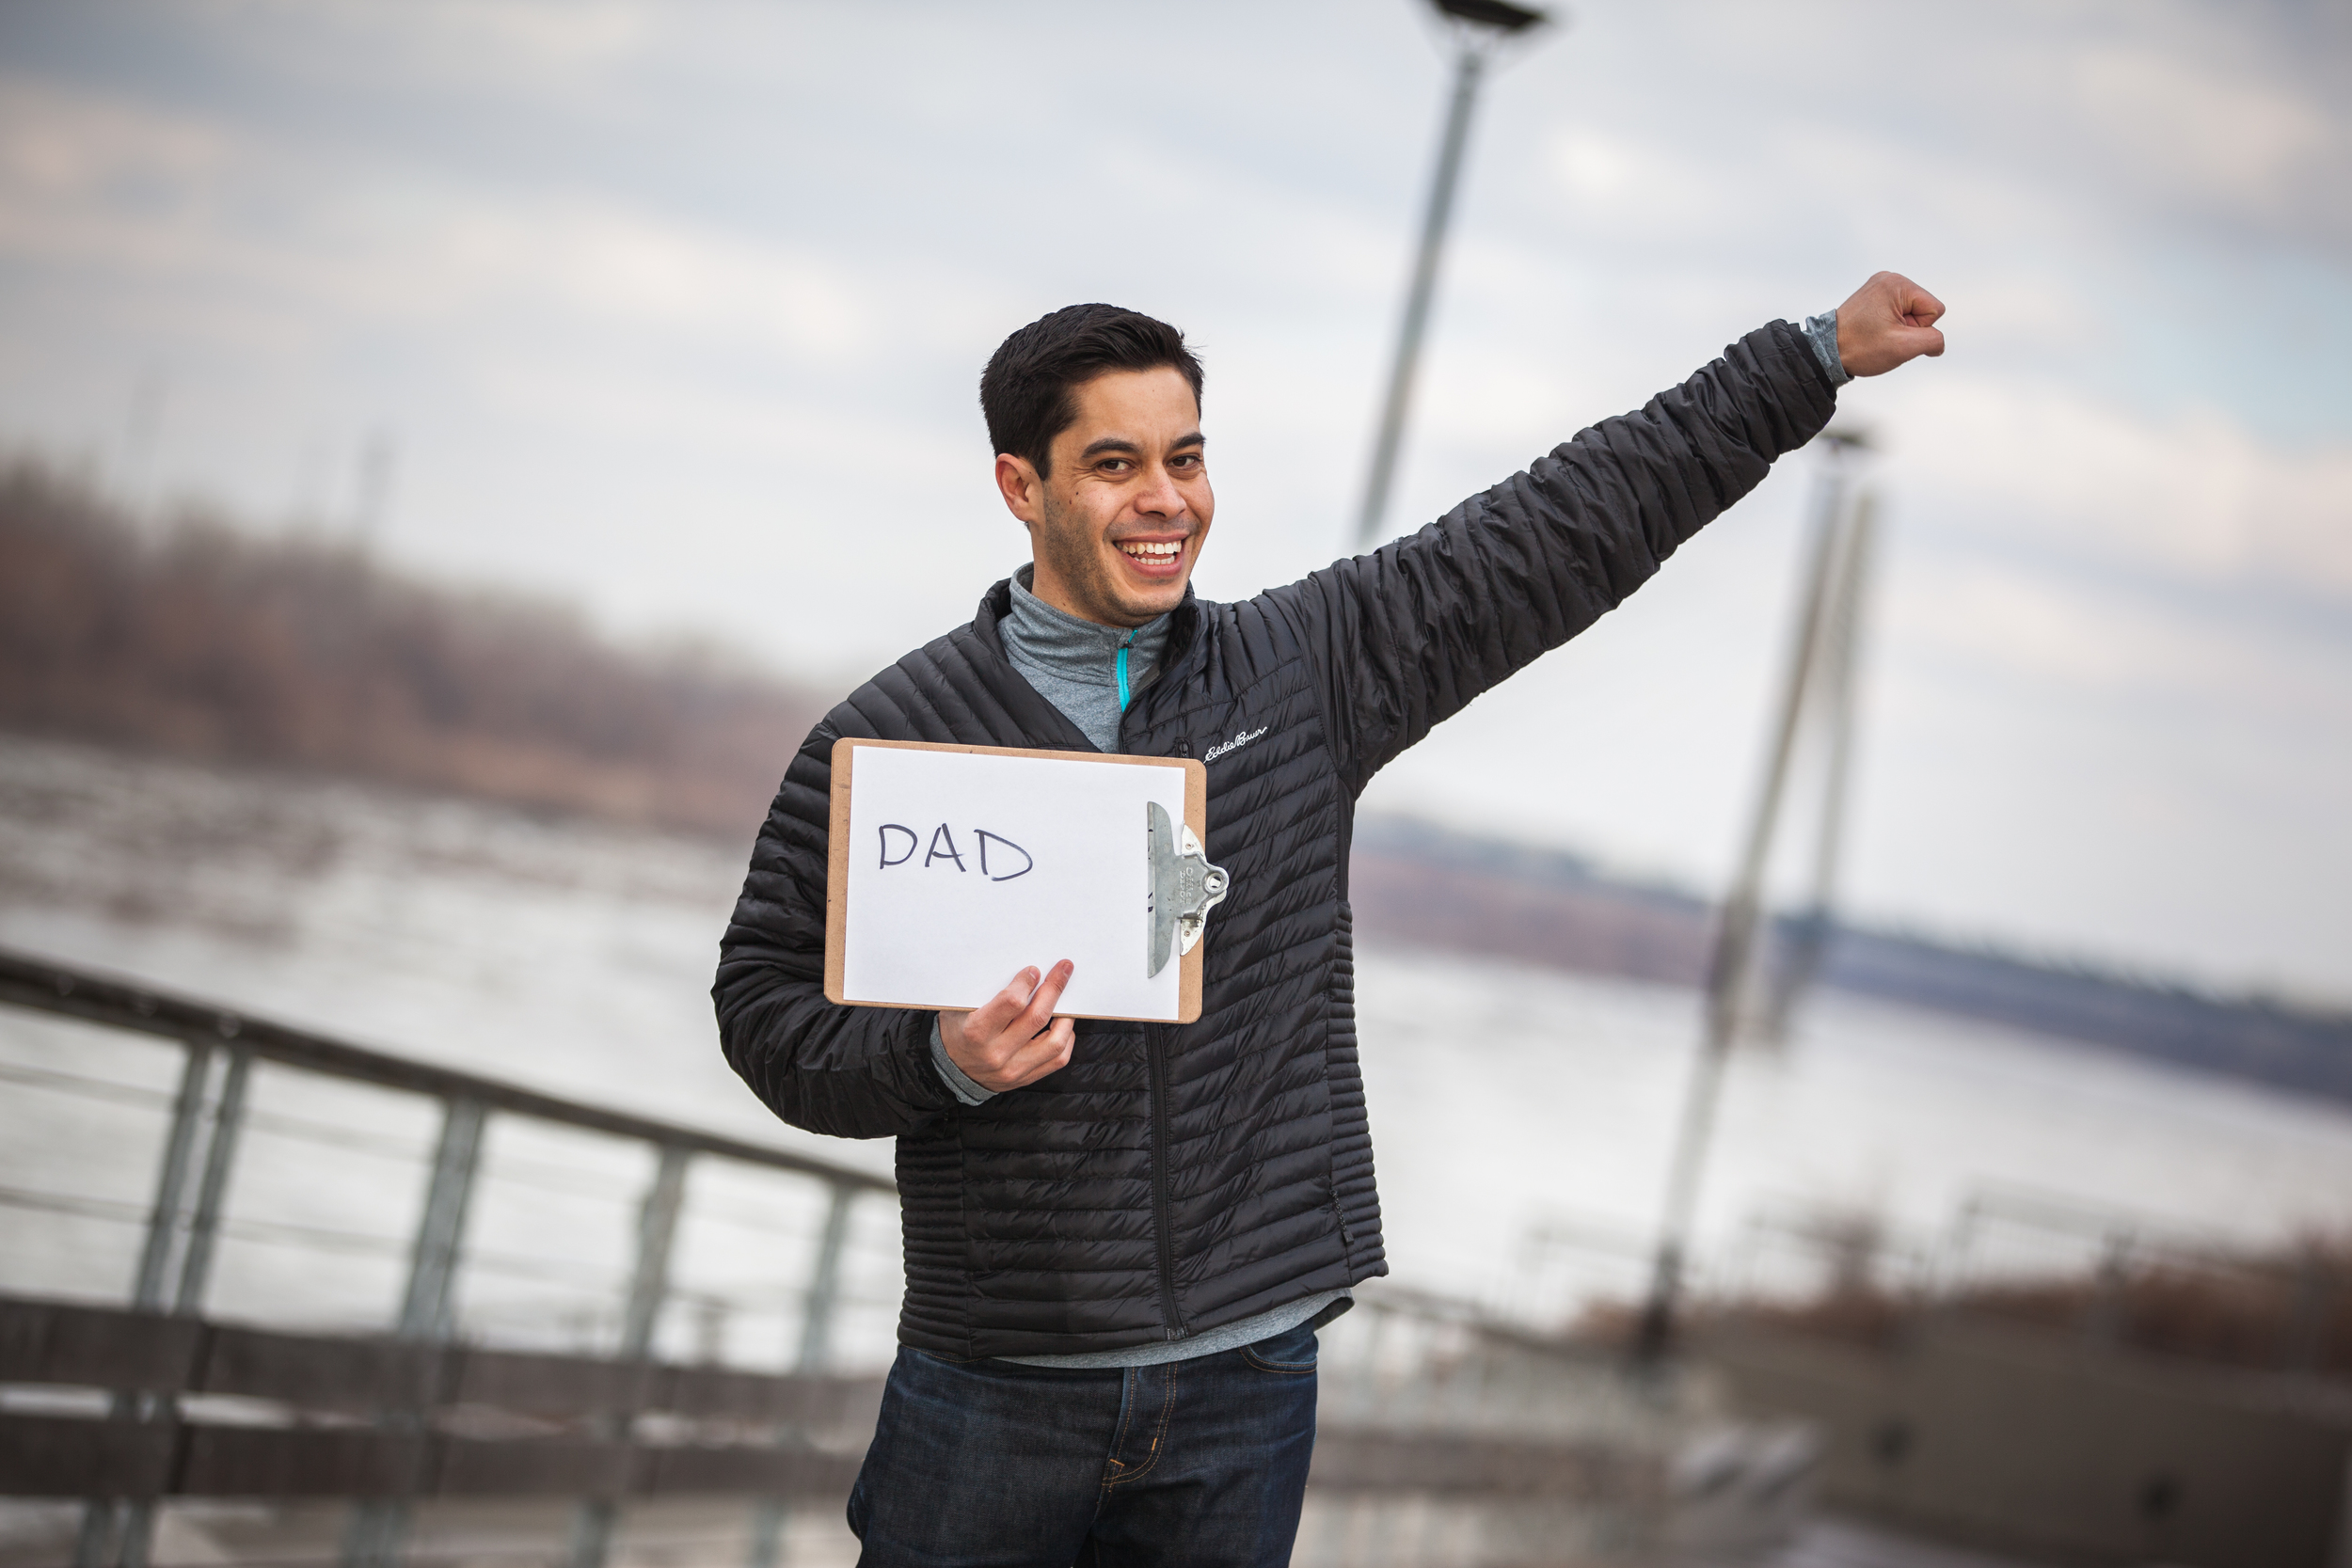 Man holding a sign saying dad.